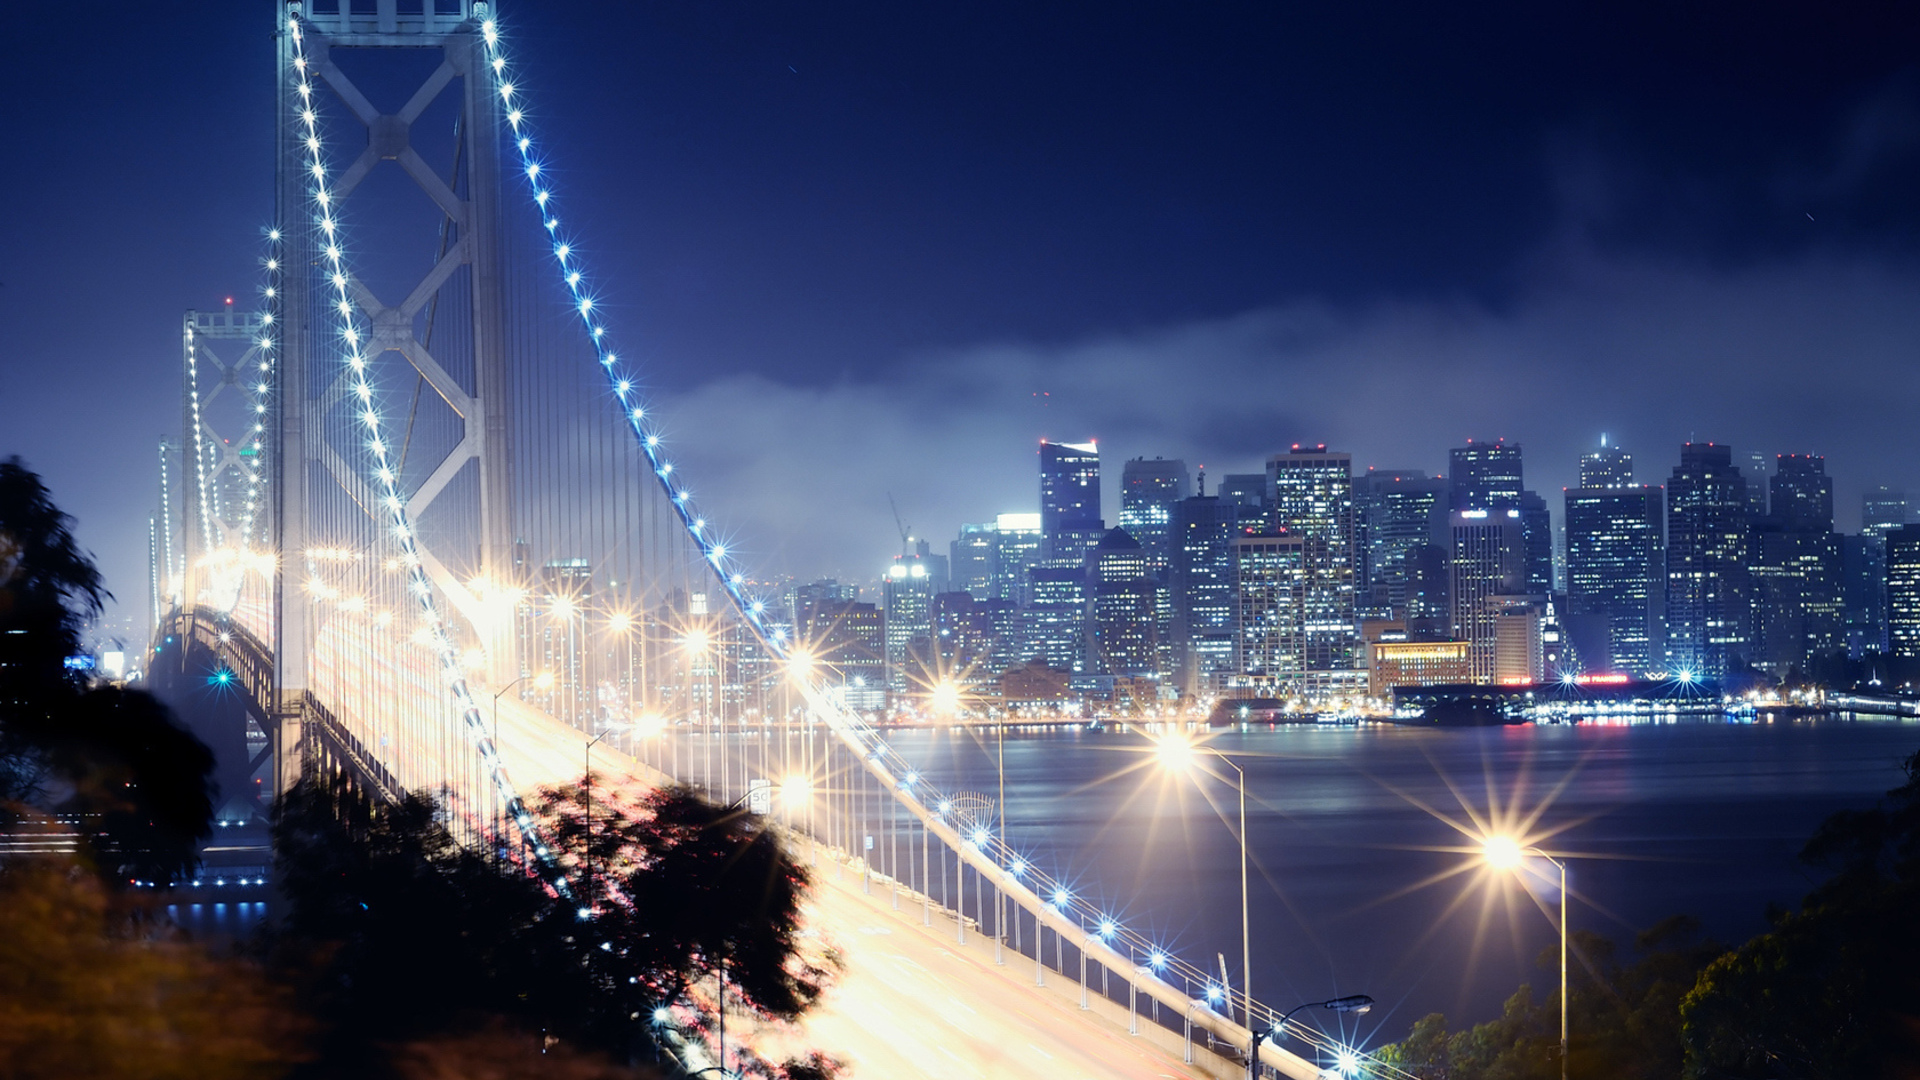 Bay Area wallpaper background